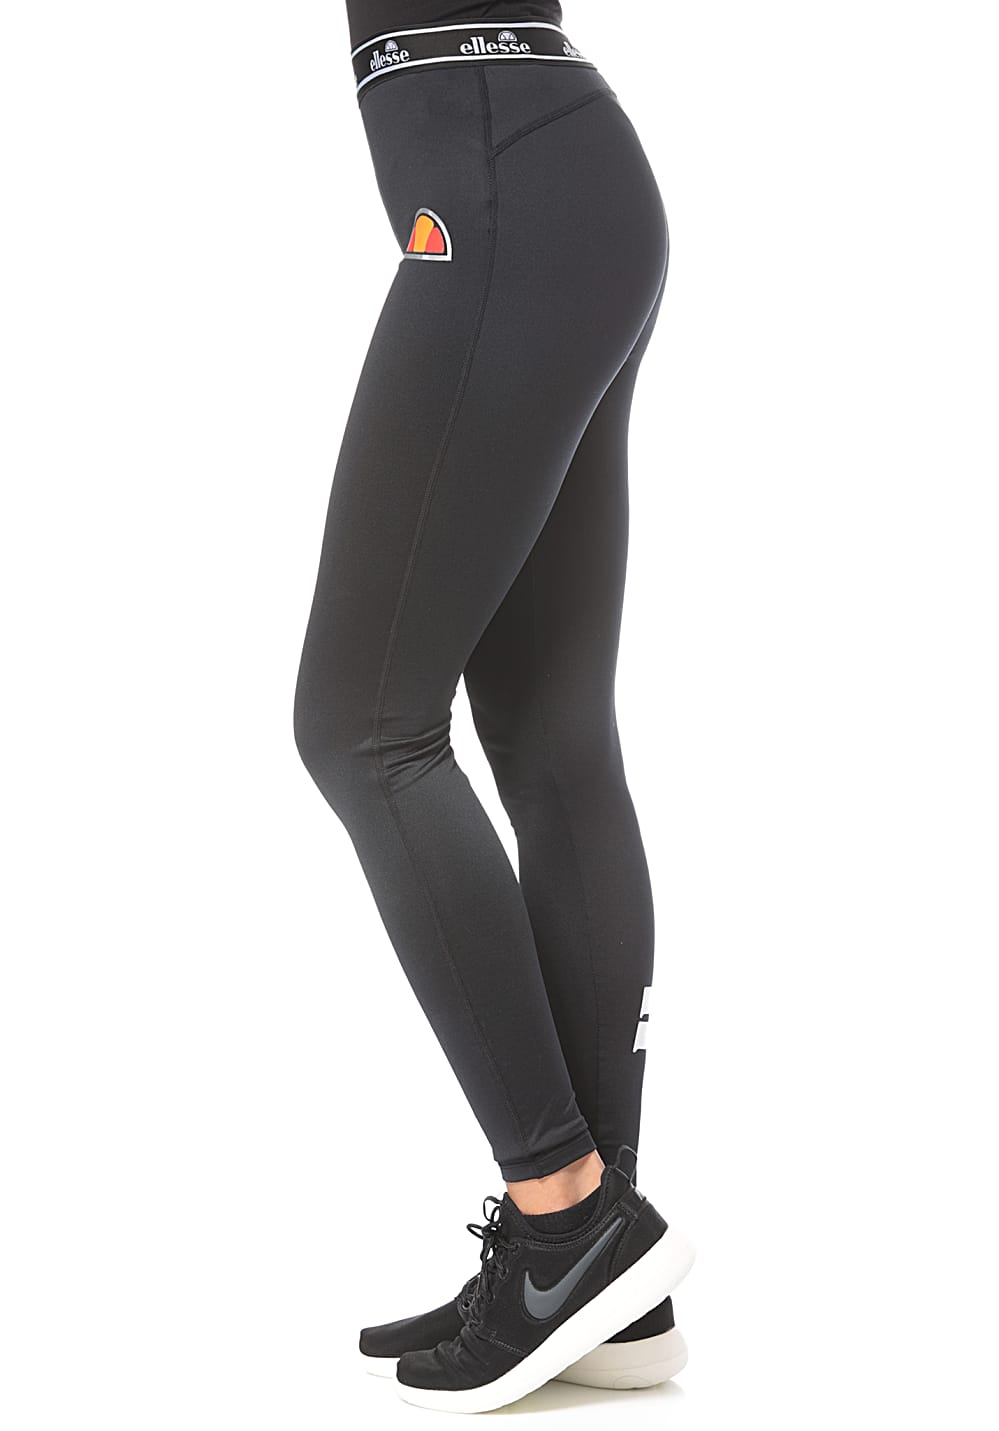 34b4e135e98 ELLESSE Venus - Leggings für Damen - Schwarz - Planet Sports